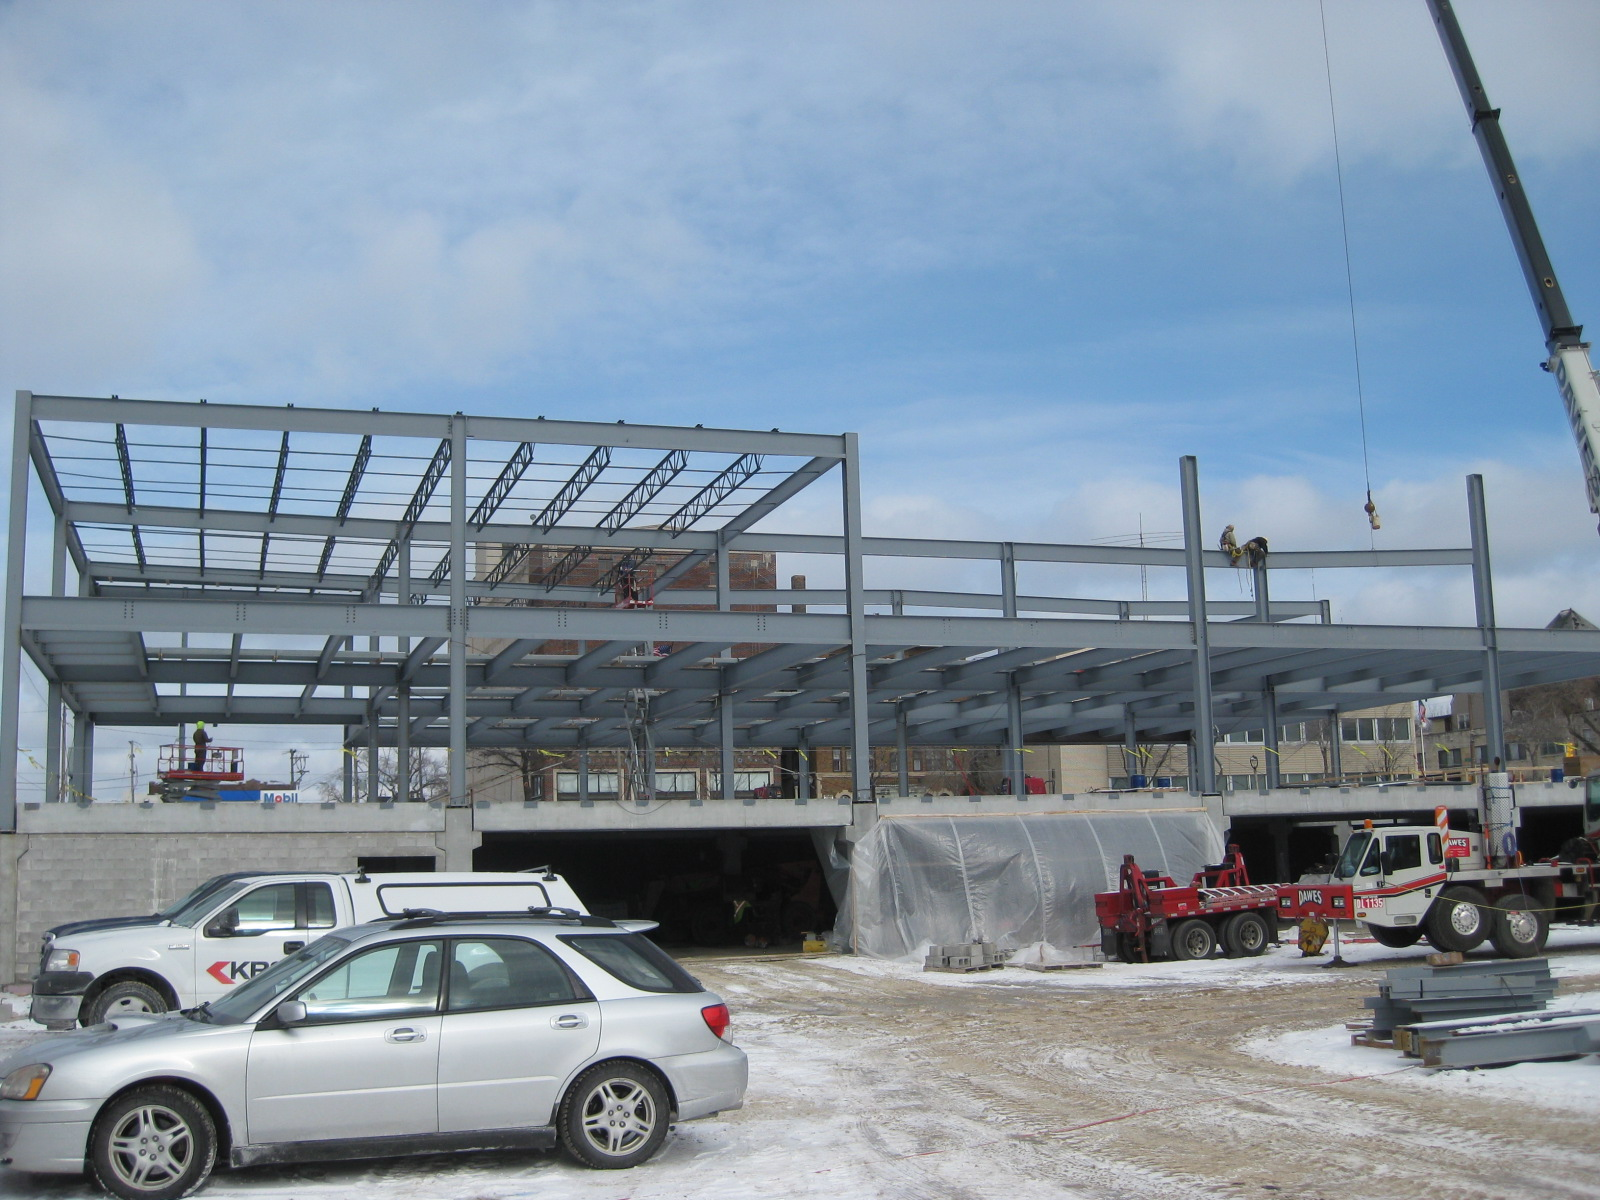 State of Wisconsin Department Of Children and Families office building under construction.